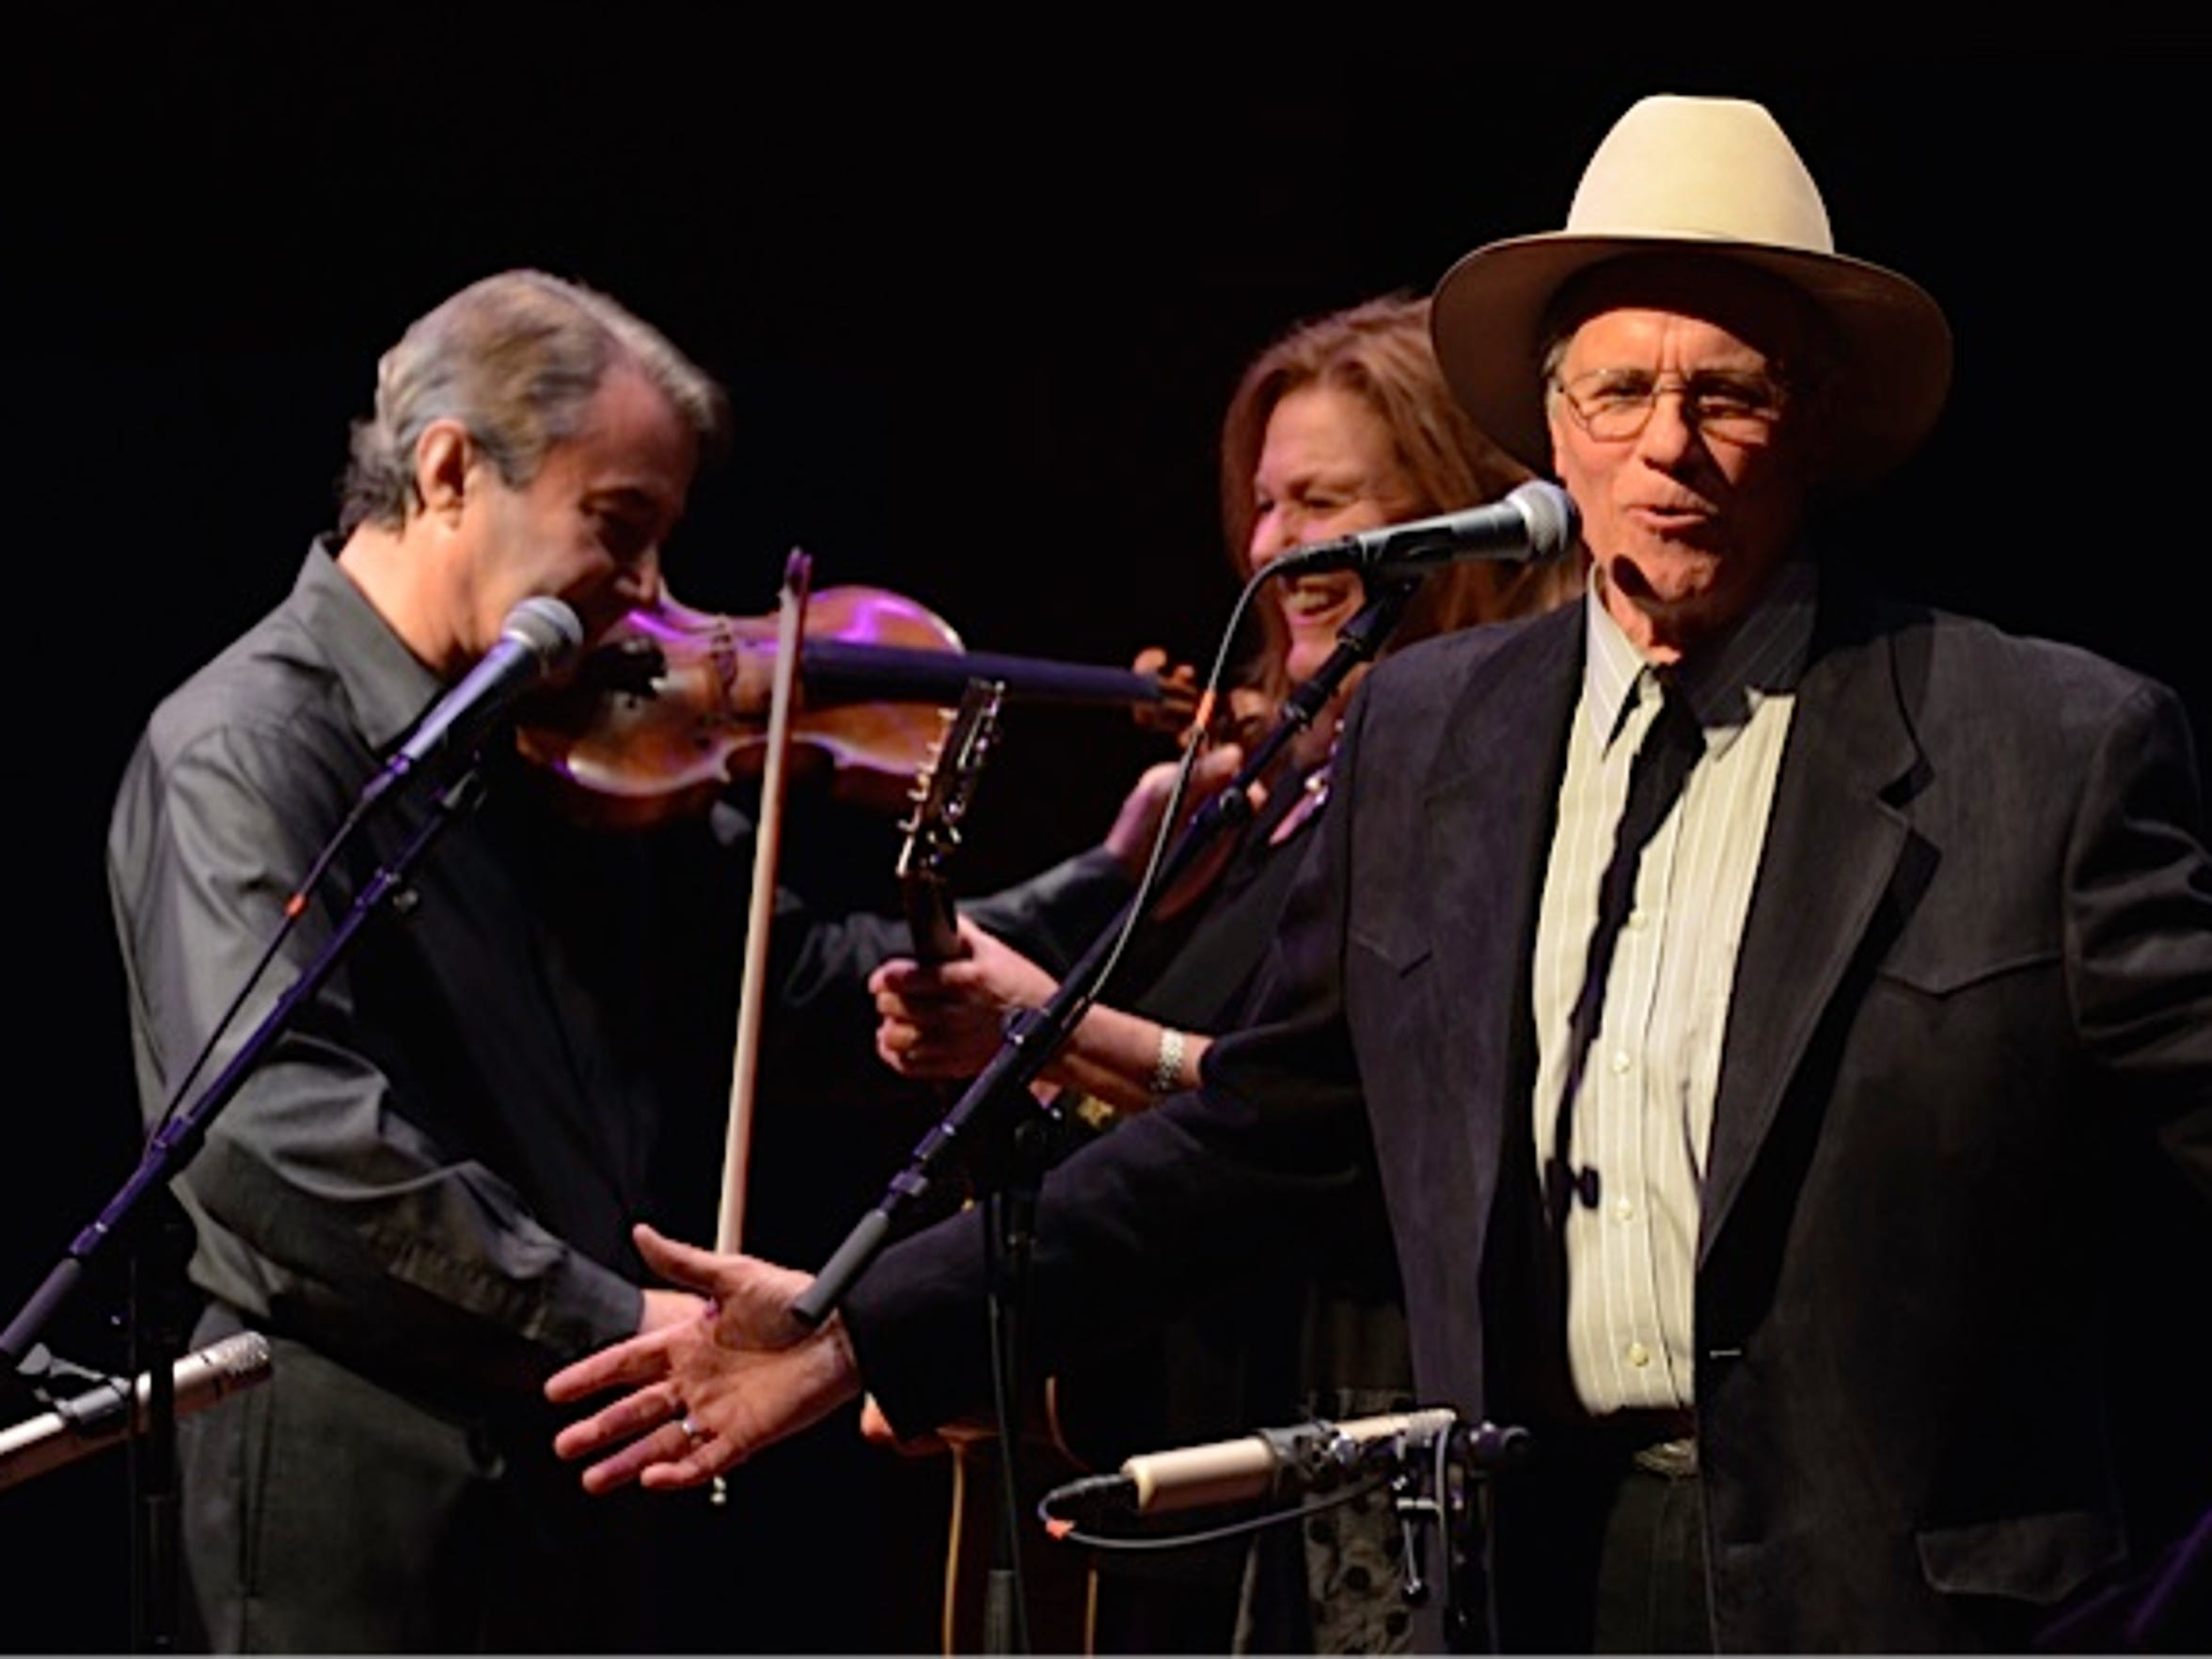 The Robin and Linda Williams concert on Dec. 8 2014 at the Forbes Center at James Madison University in Harrisonburg, where Daniel Heifetz made a cameo appearance at a benefit holiday concert for WMRA.